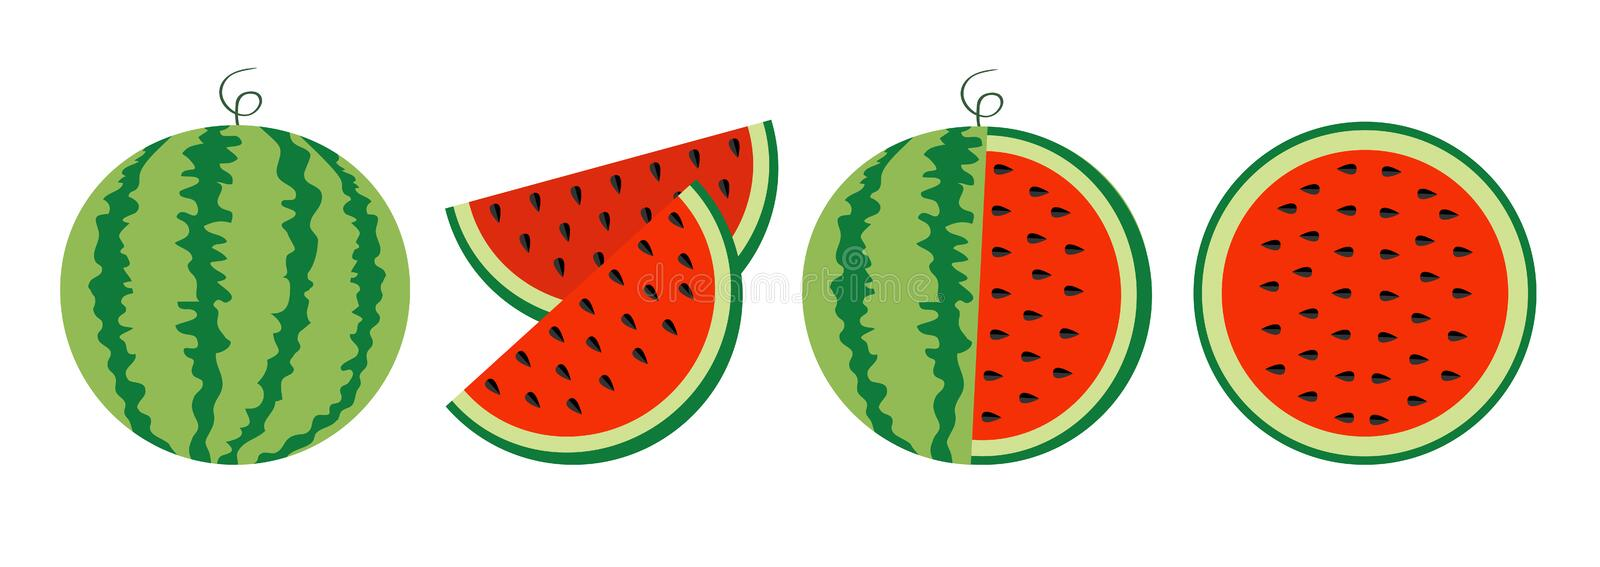 Watermelon icon set line. Whole ripe green stem. Slice cut half seeds. Green Red round fruit berry flesh peel. Natural healthy vector illustration